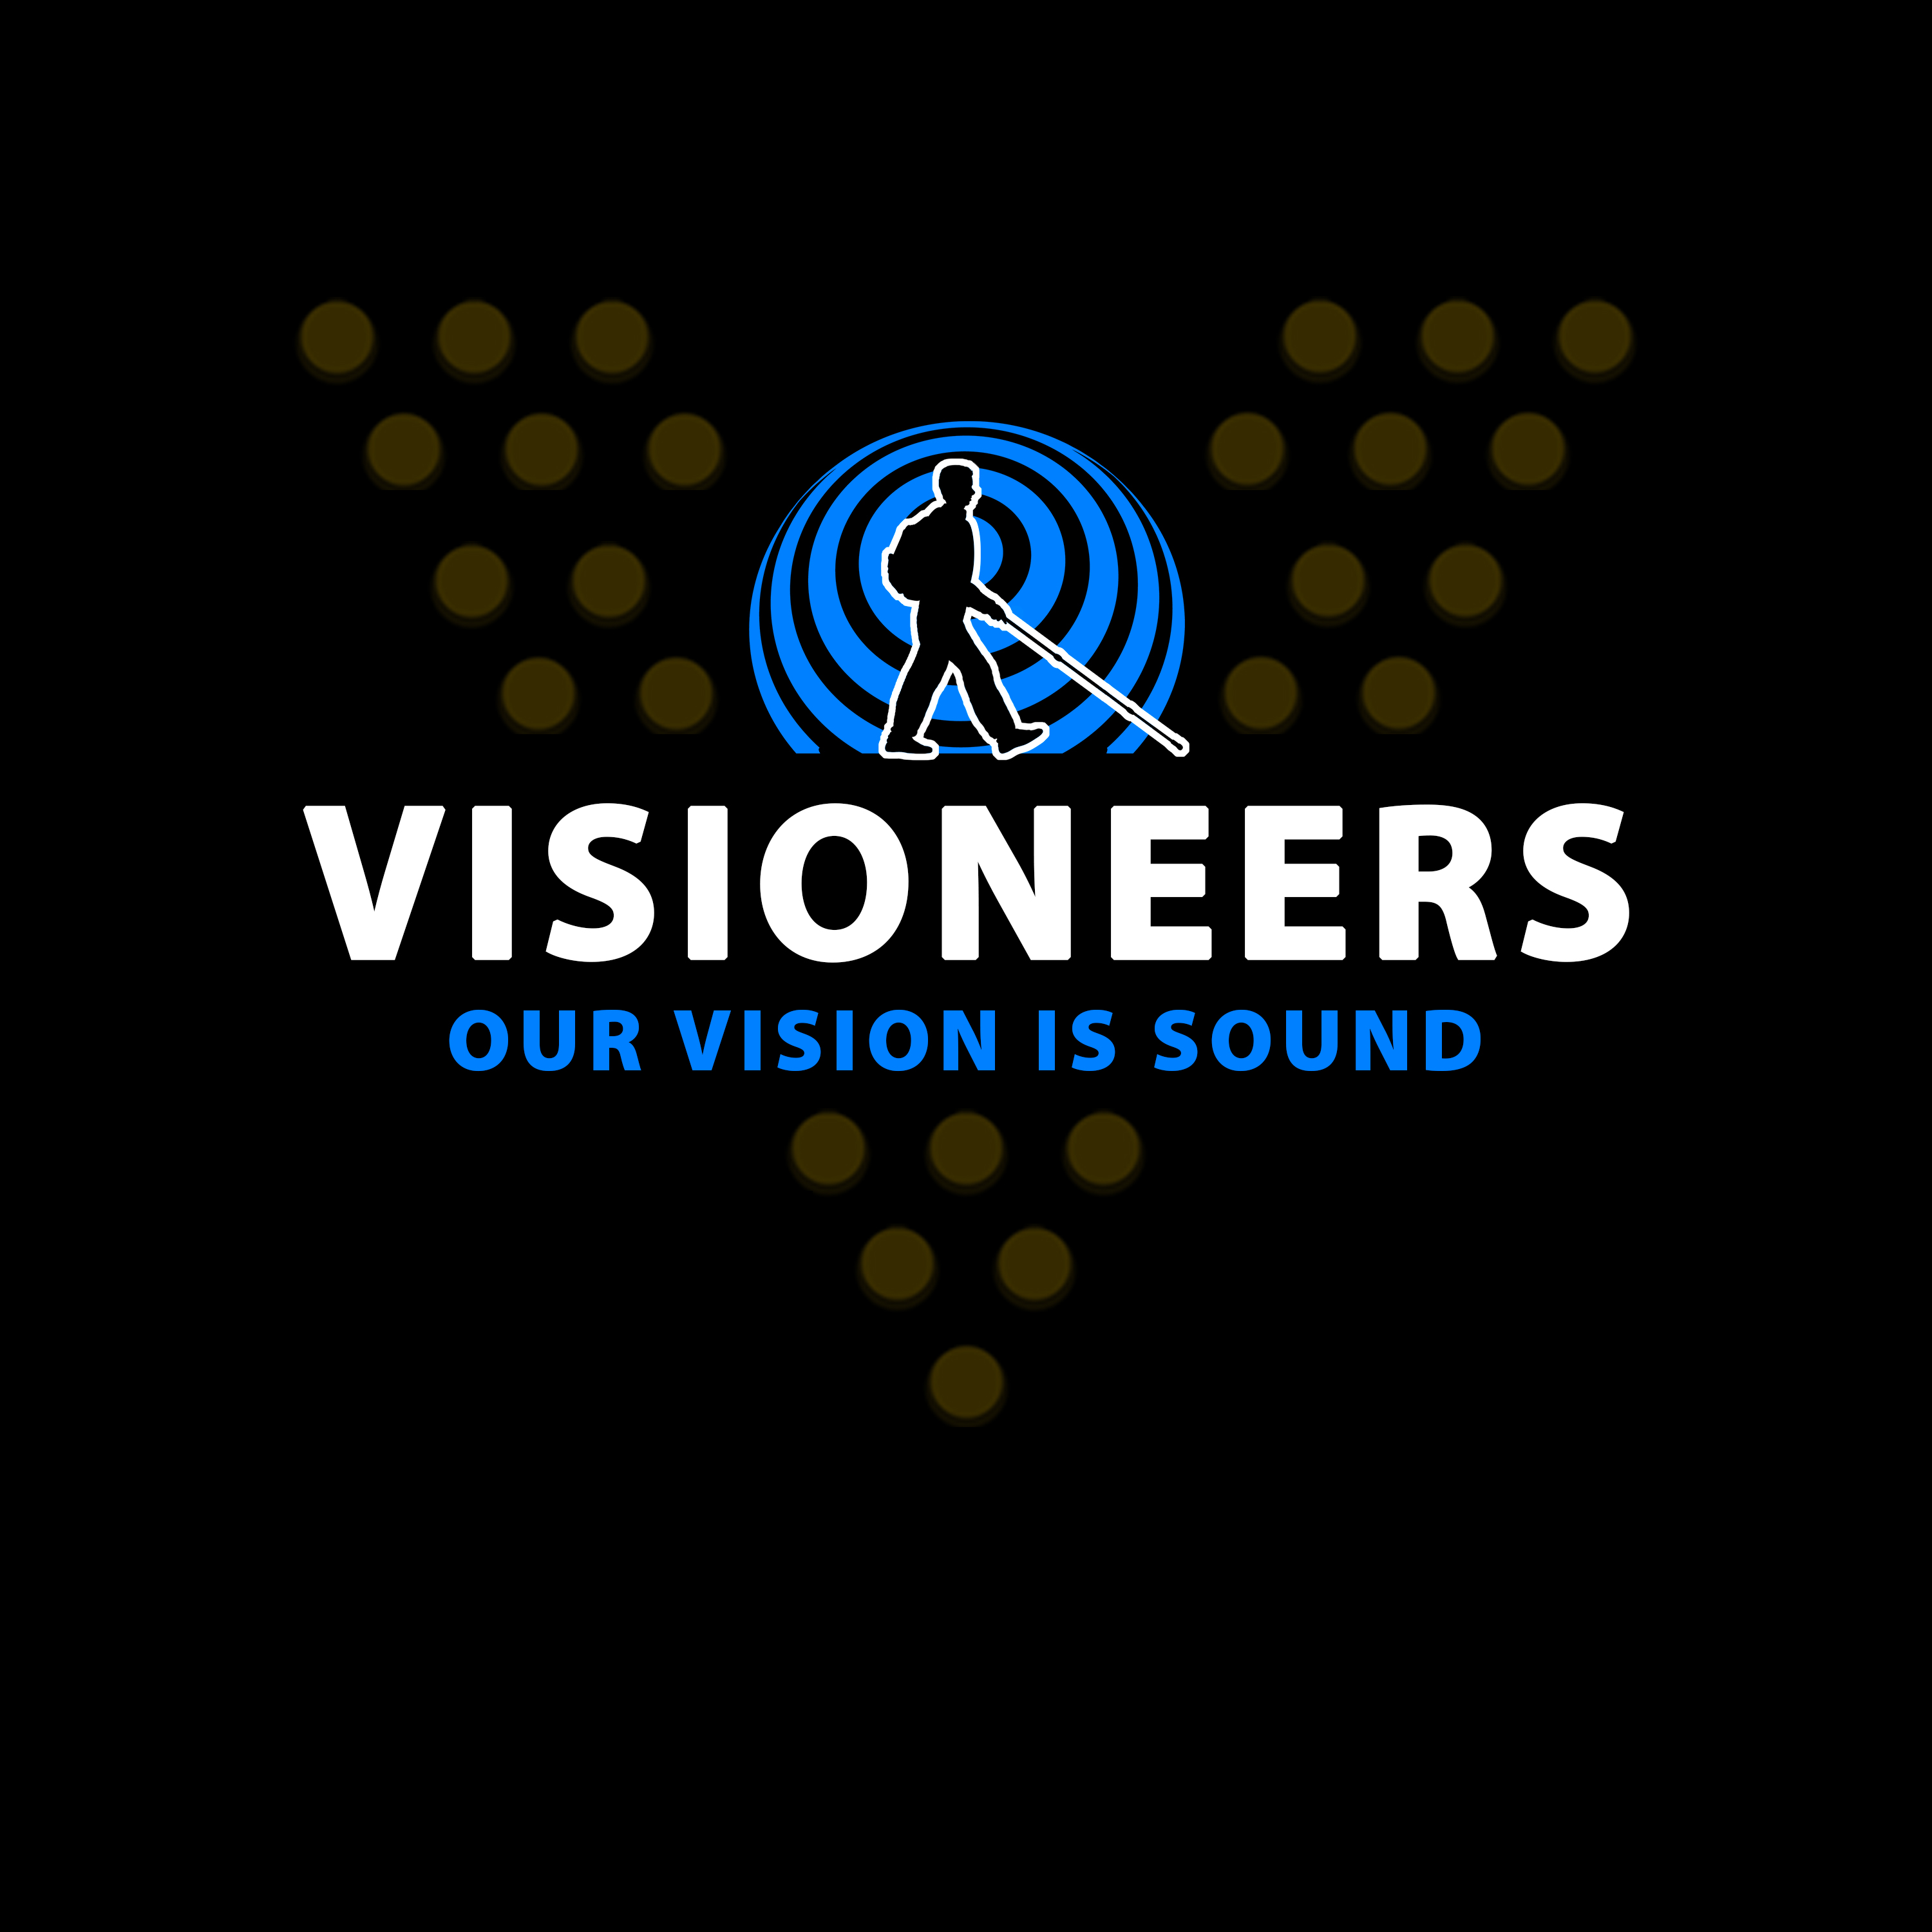 Visioneers 14. Same aS PREVIOUS PANEL BUT WITH YELLOW V DOTS.